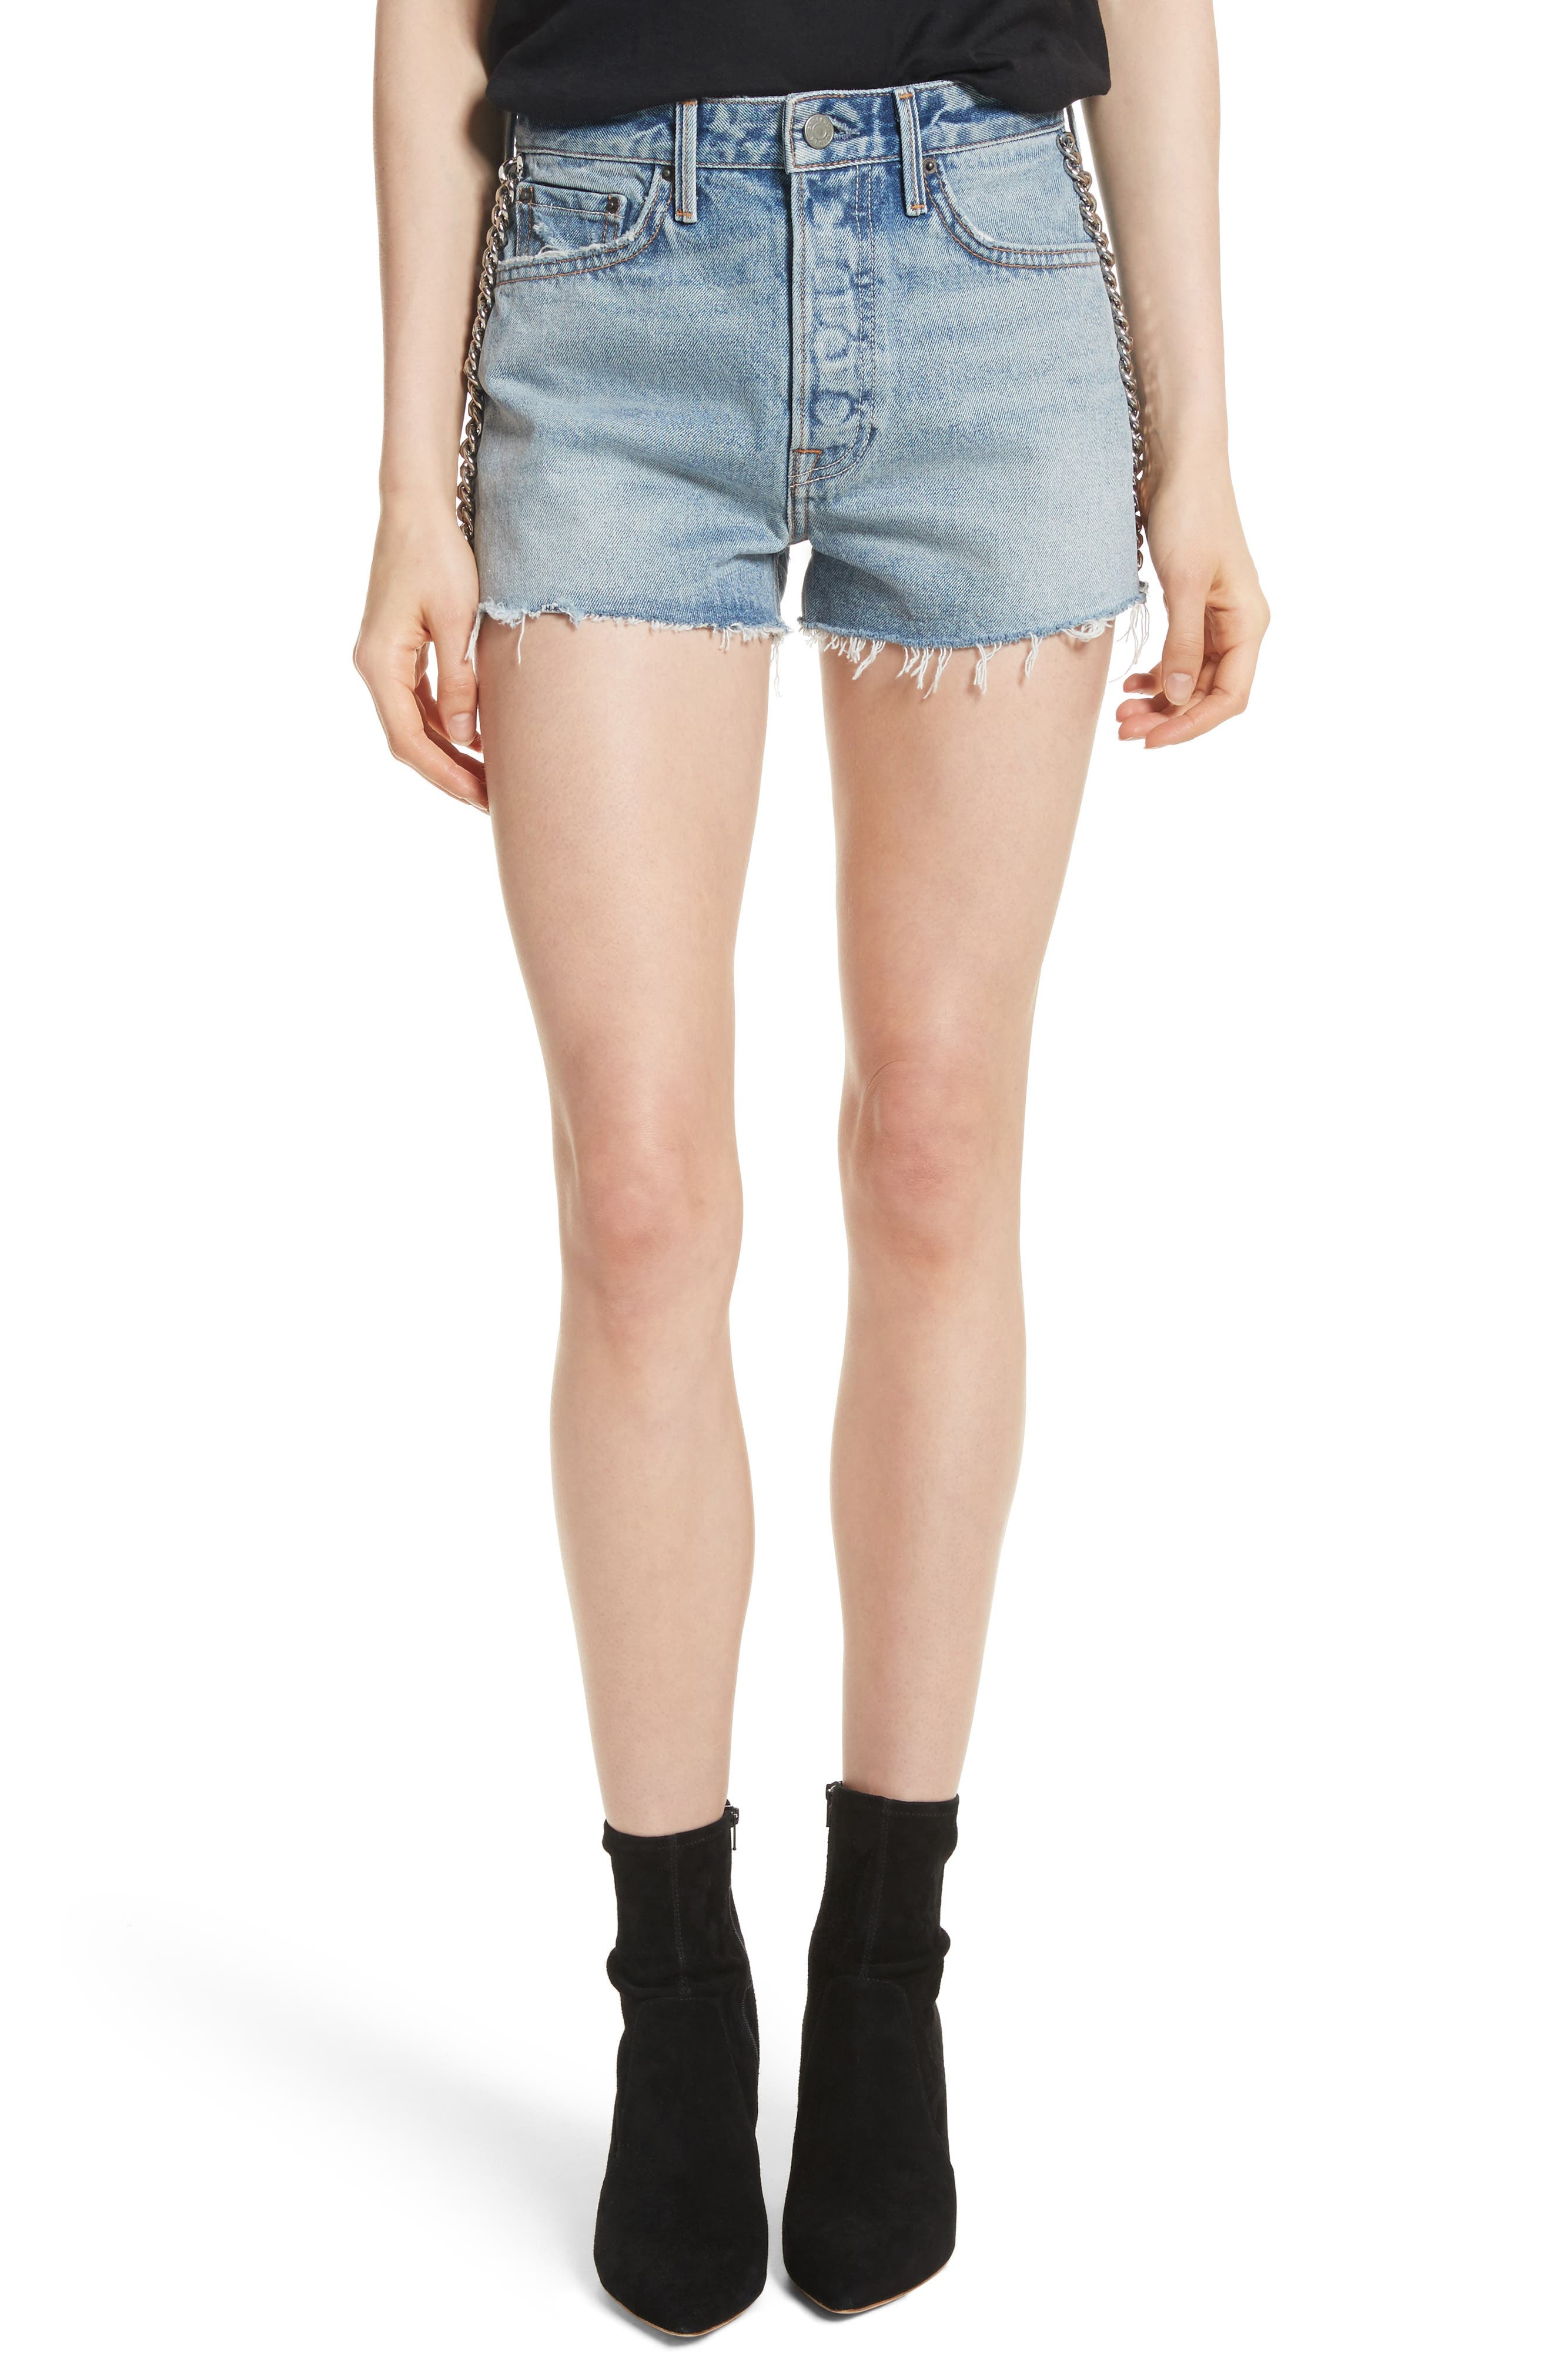 Cindy Rigid High Waist Denim Shorts,                             Main thumbnail 1, color,                             Cast Iron